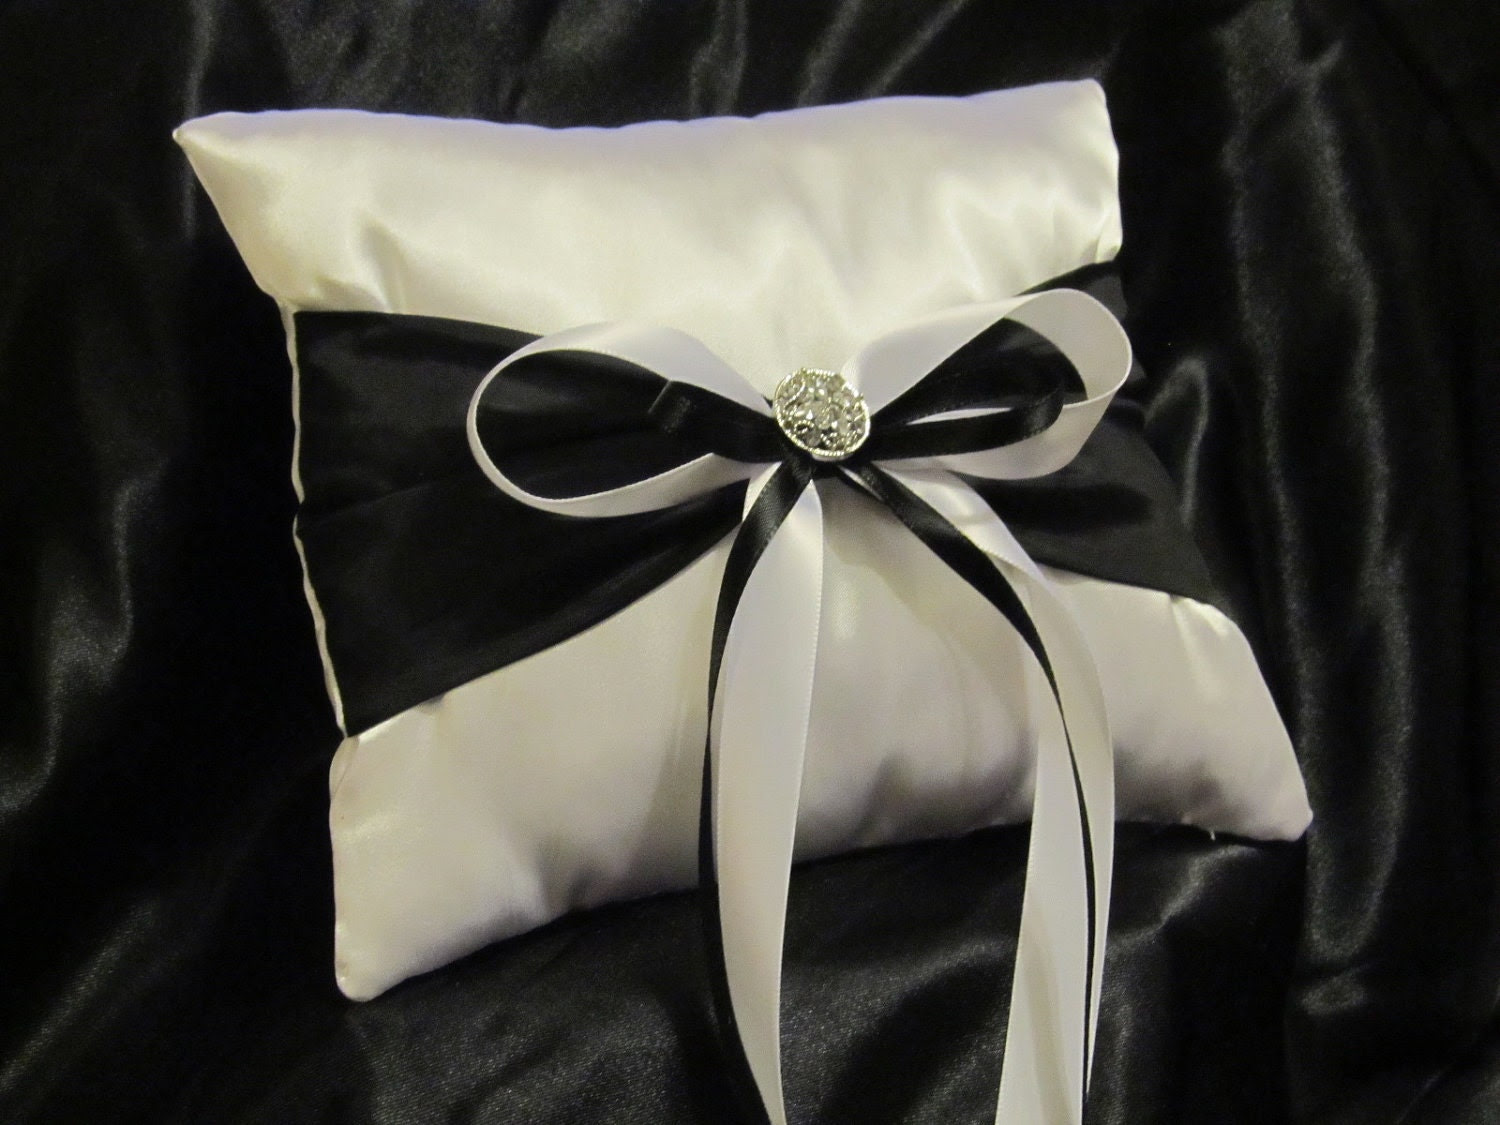 Ring Bearer Pillow - Black and White Satin With a Touch of Class